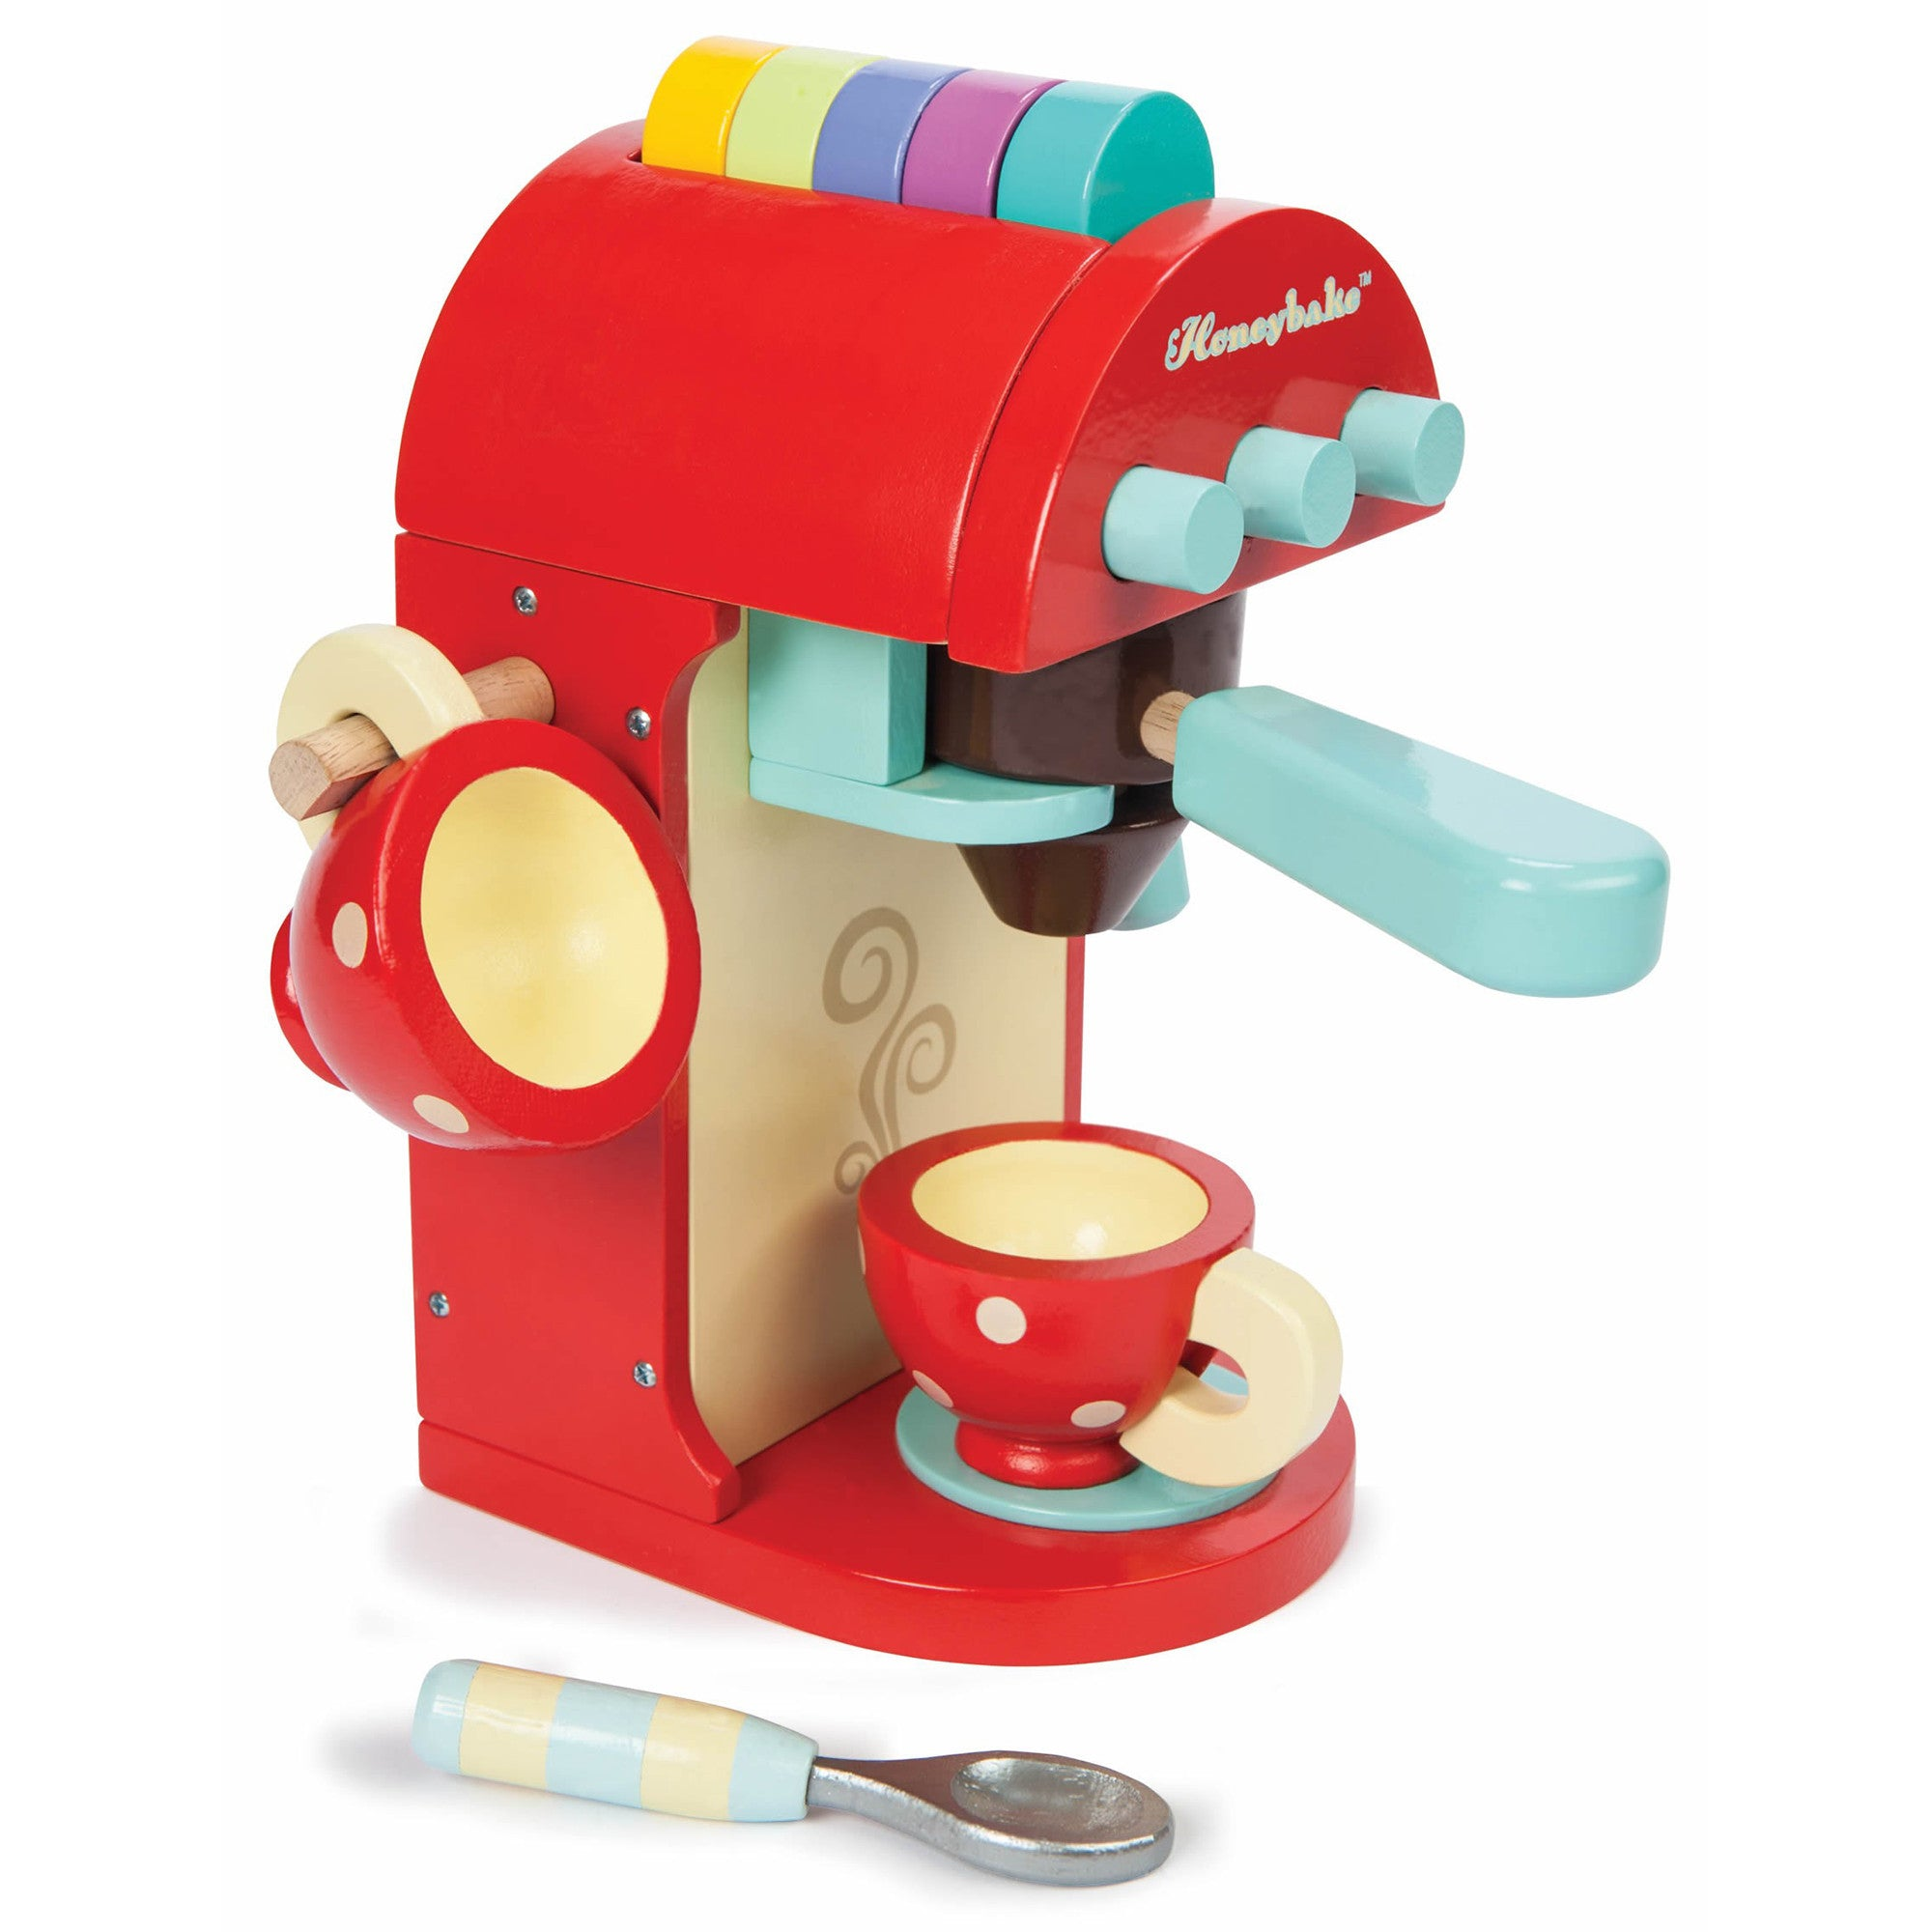 Le Toy Van Cafe Espresso Machine Le Toy Van Toy Kitchens & Play Food at Little Earth Nest Eco Shop